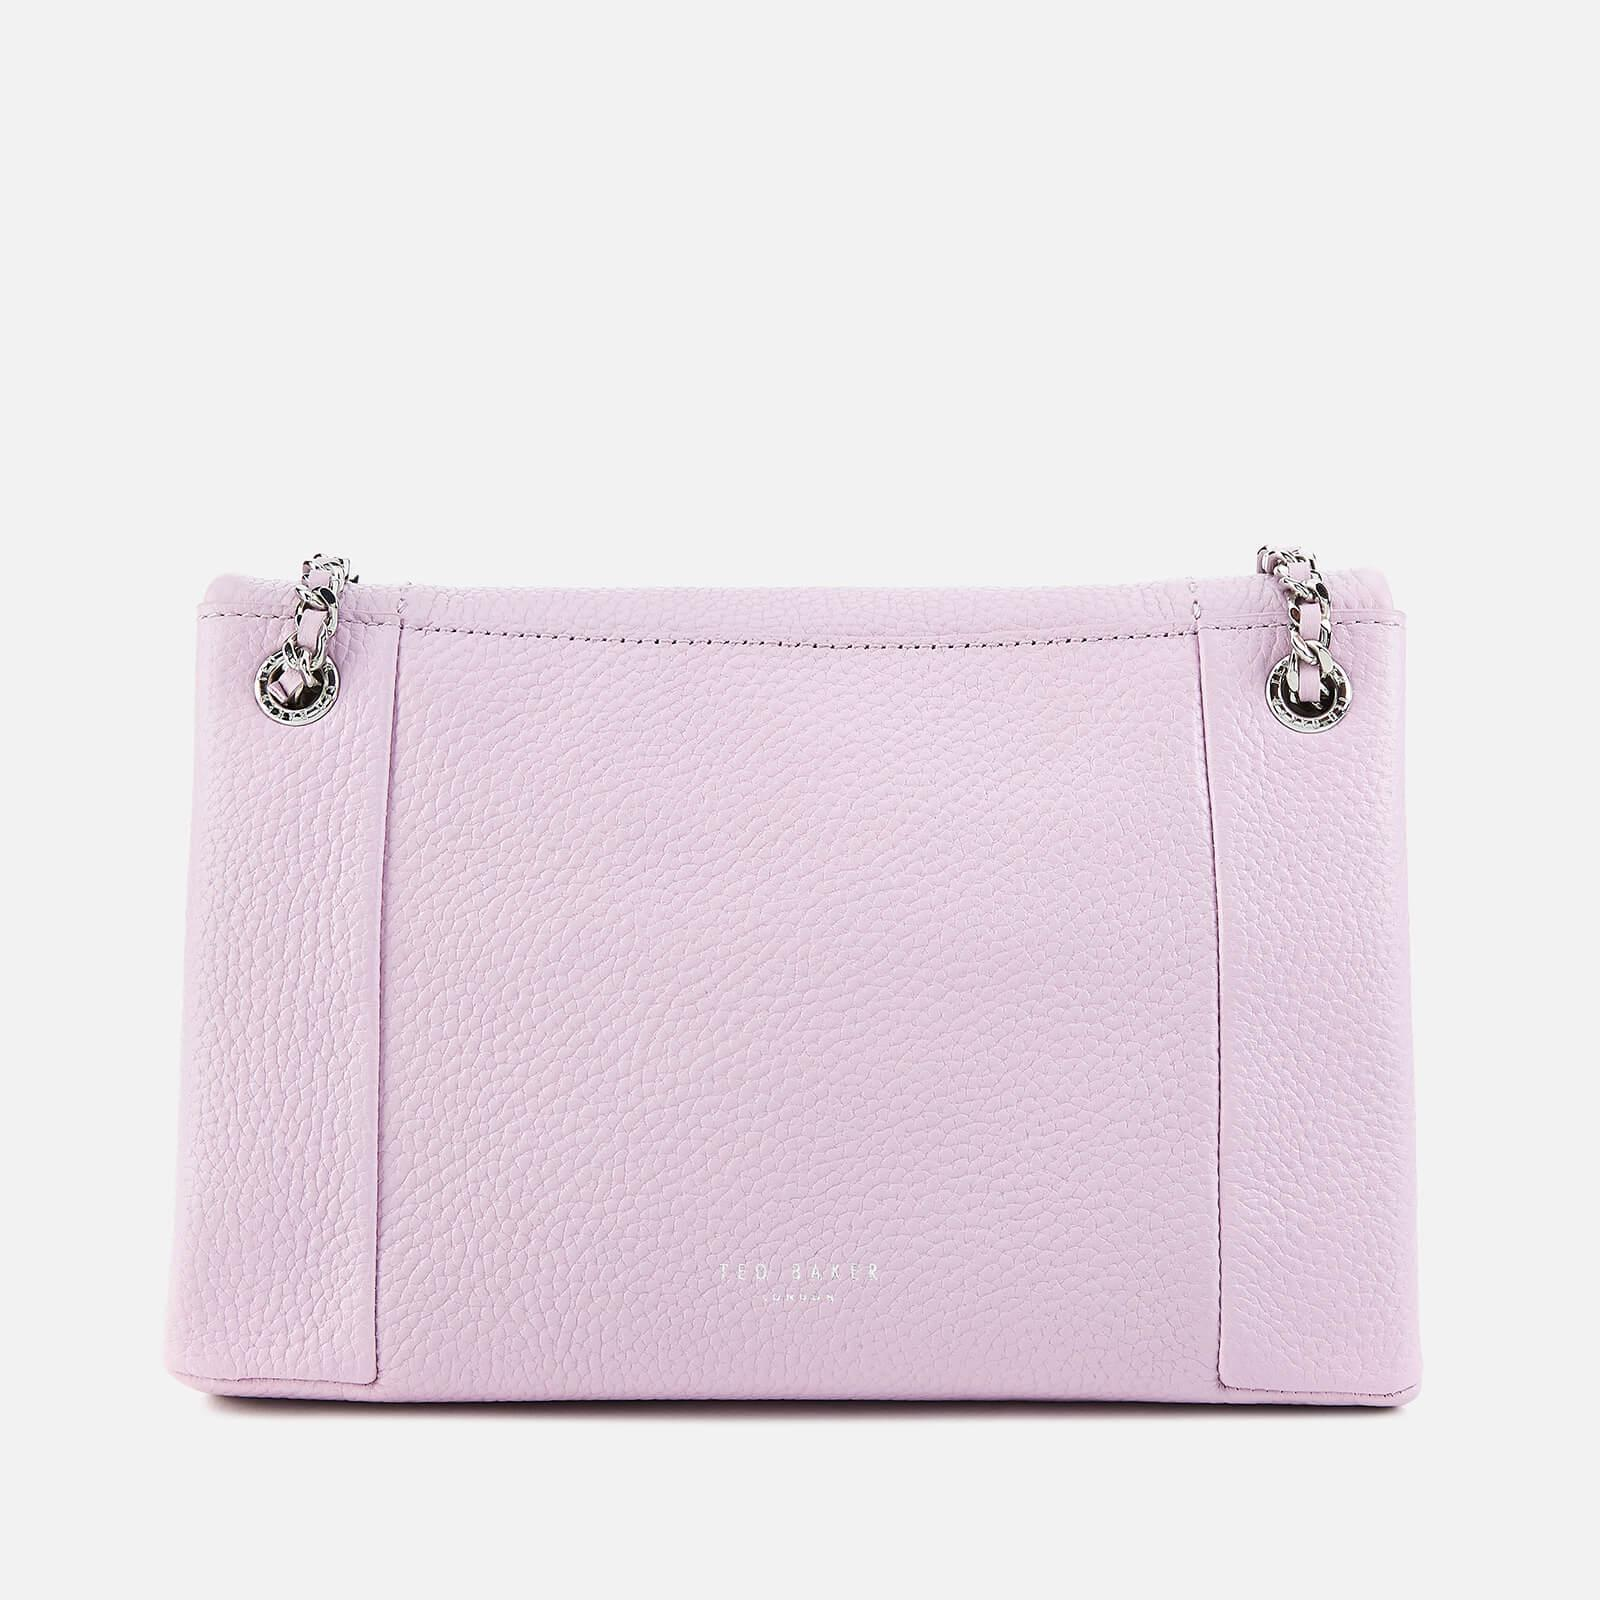 5a01be95a Lyst - Ted Baker Clarria Bow Detail Cross Body Bag in Pink